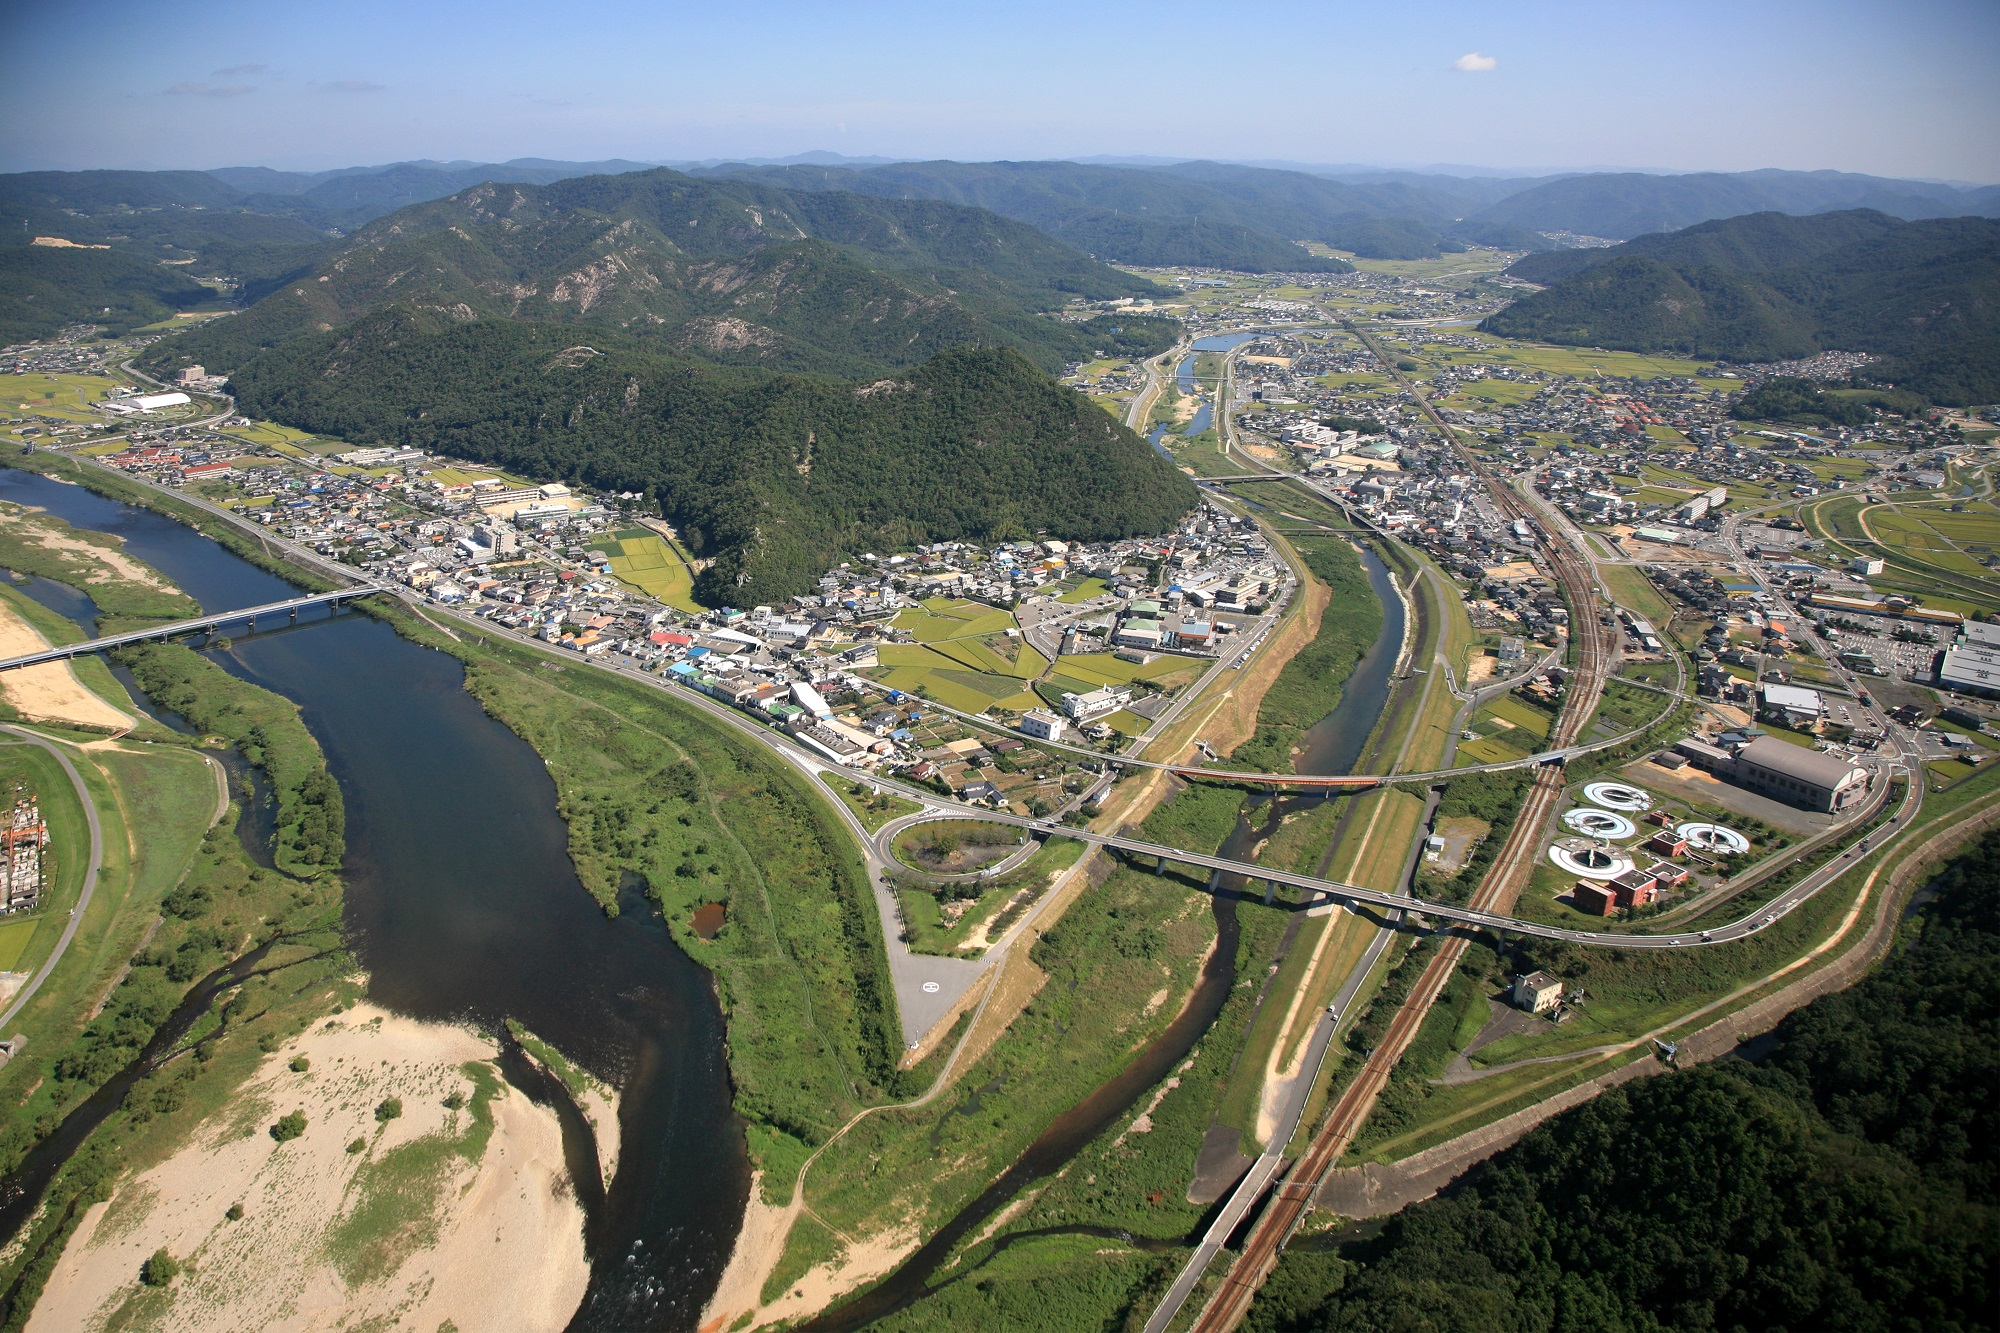 「JALふるさと納税」に 岡山県和気町 が参加しました